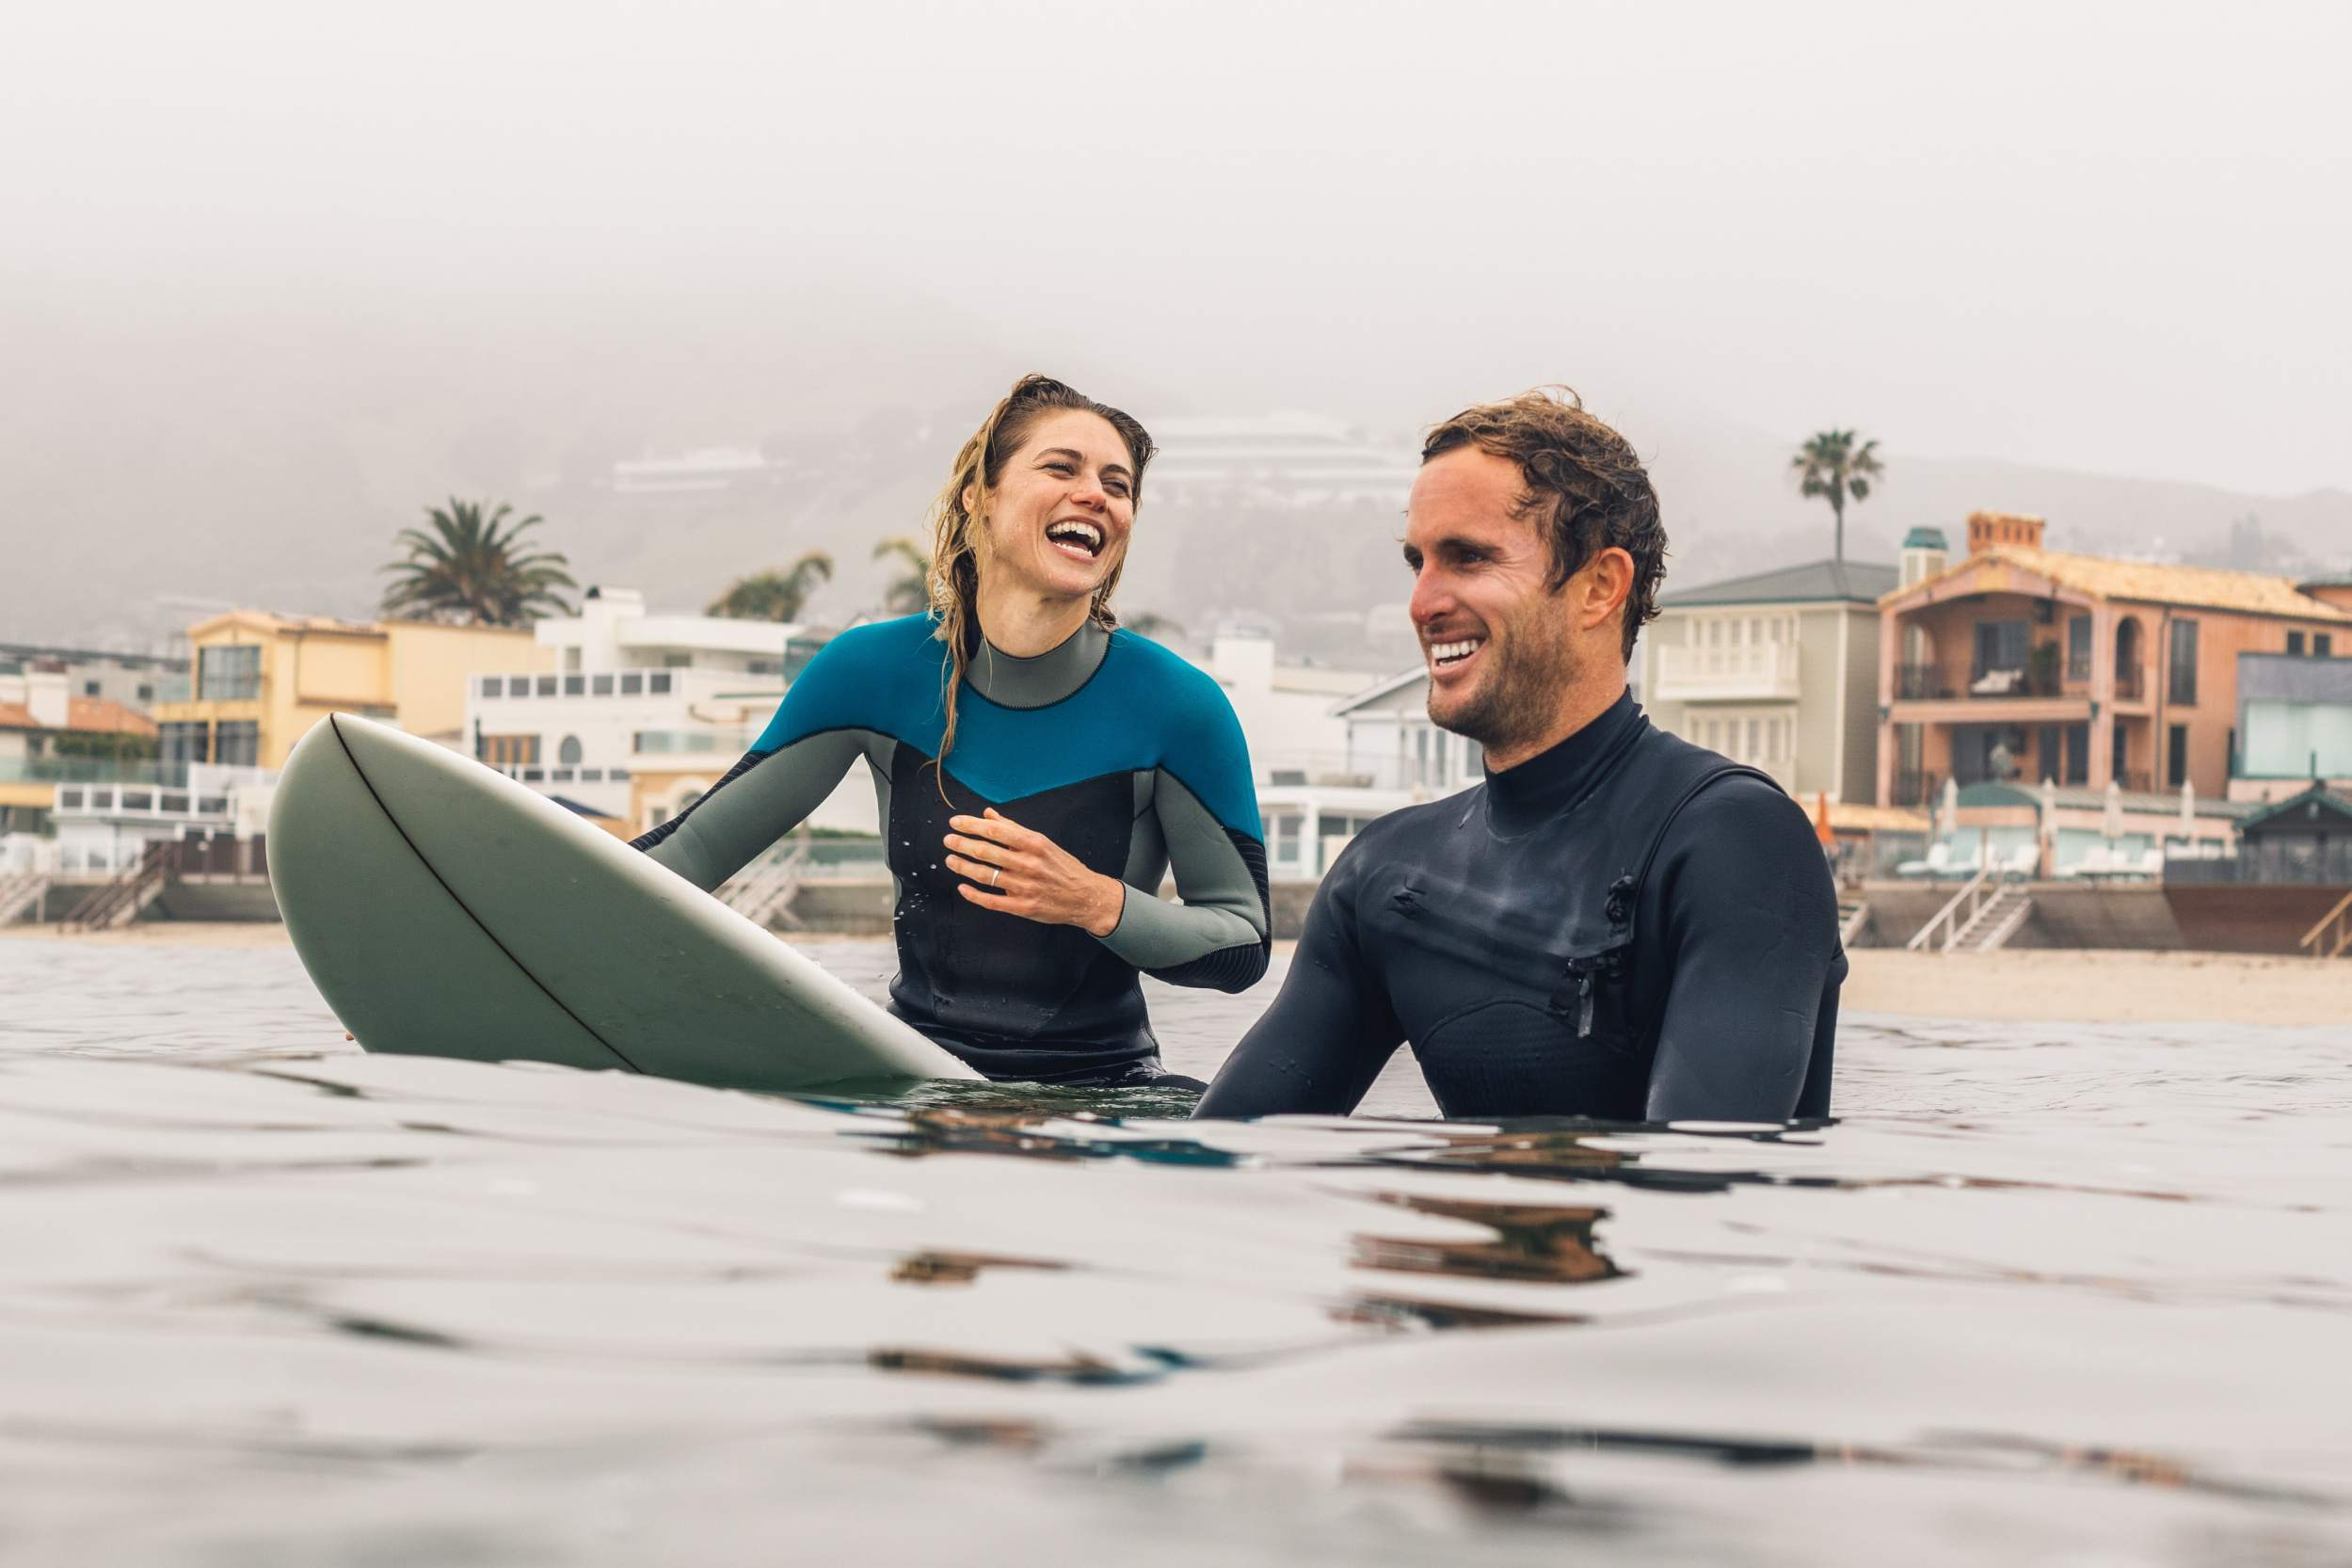 Two surfers in wet suits laugh in the water as they wait for the next big wave.